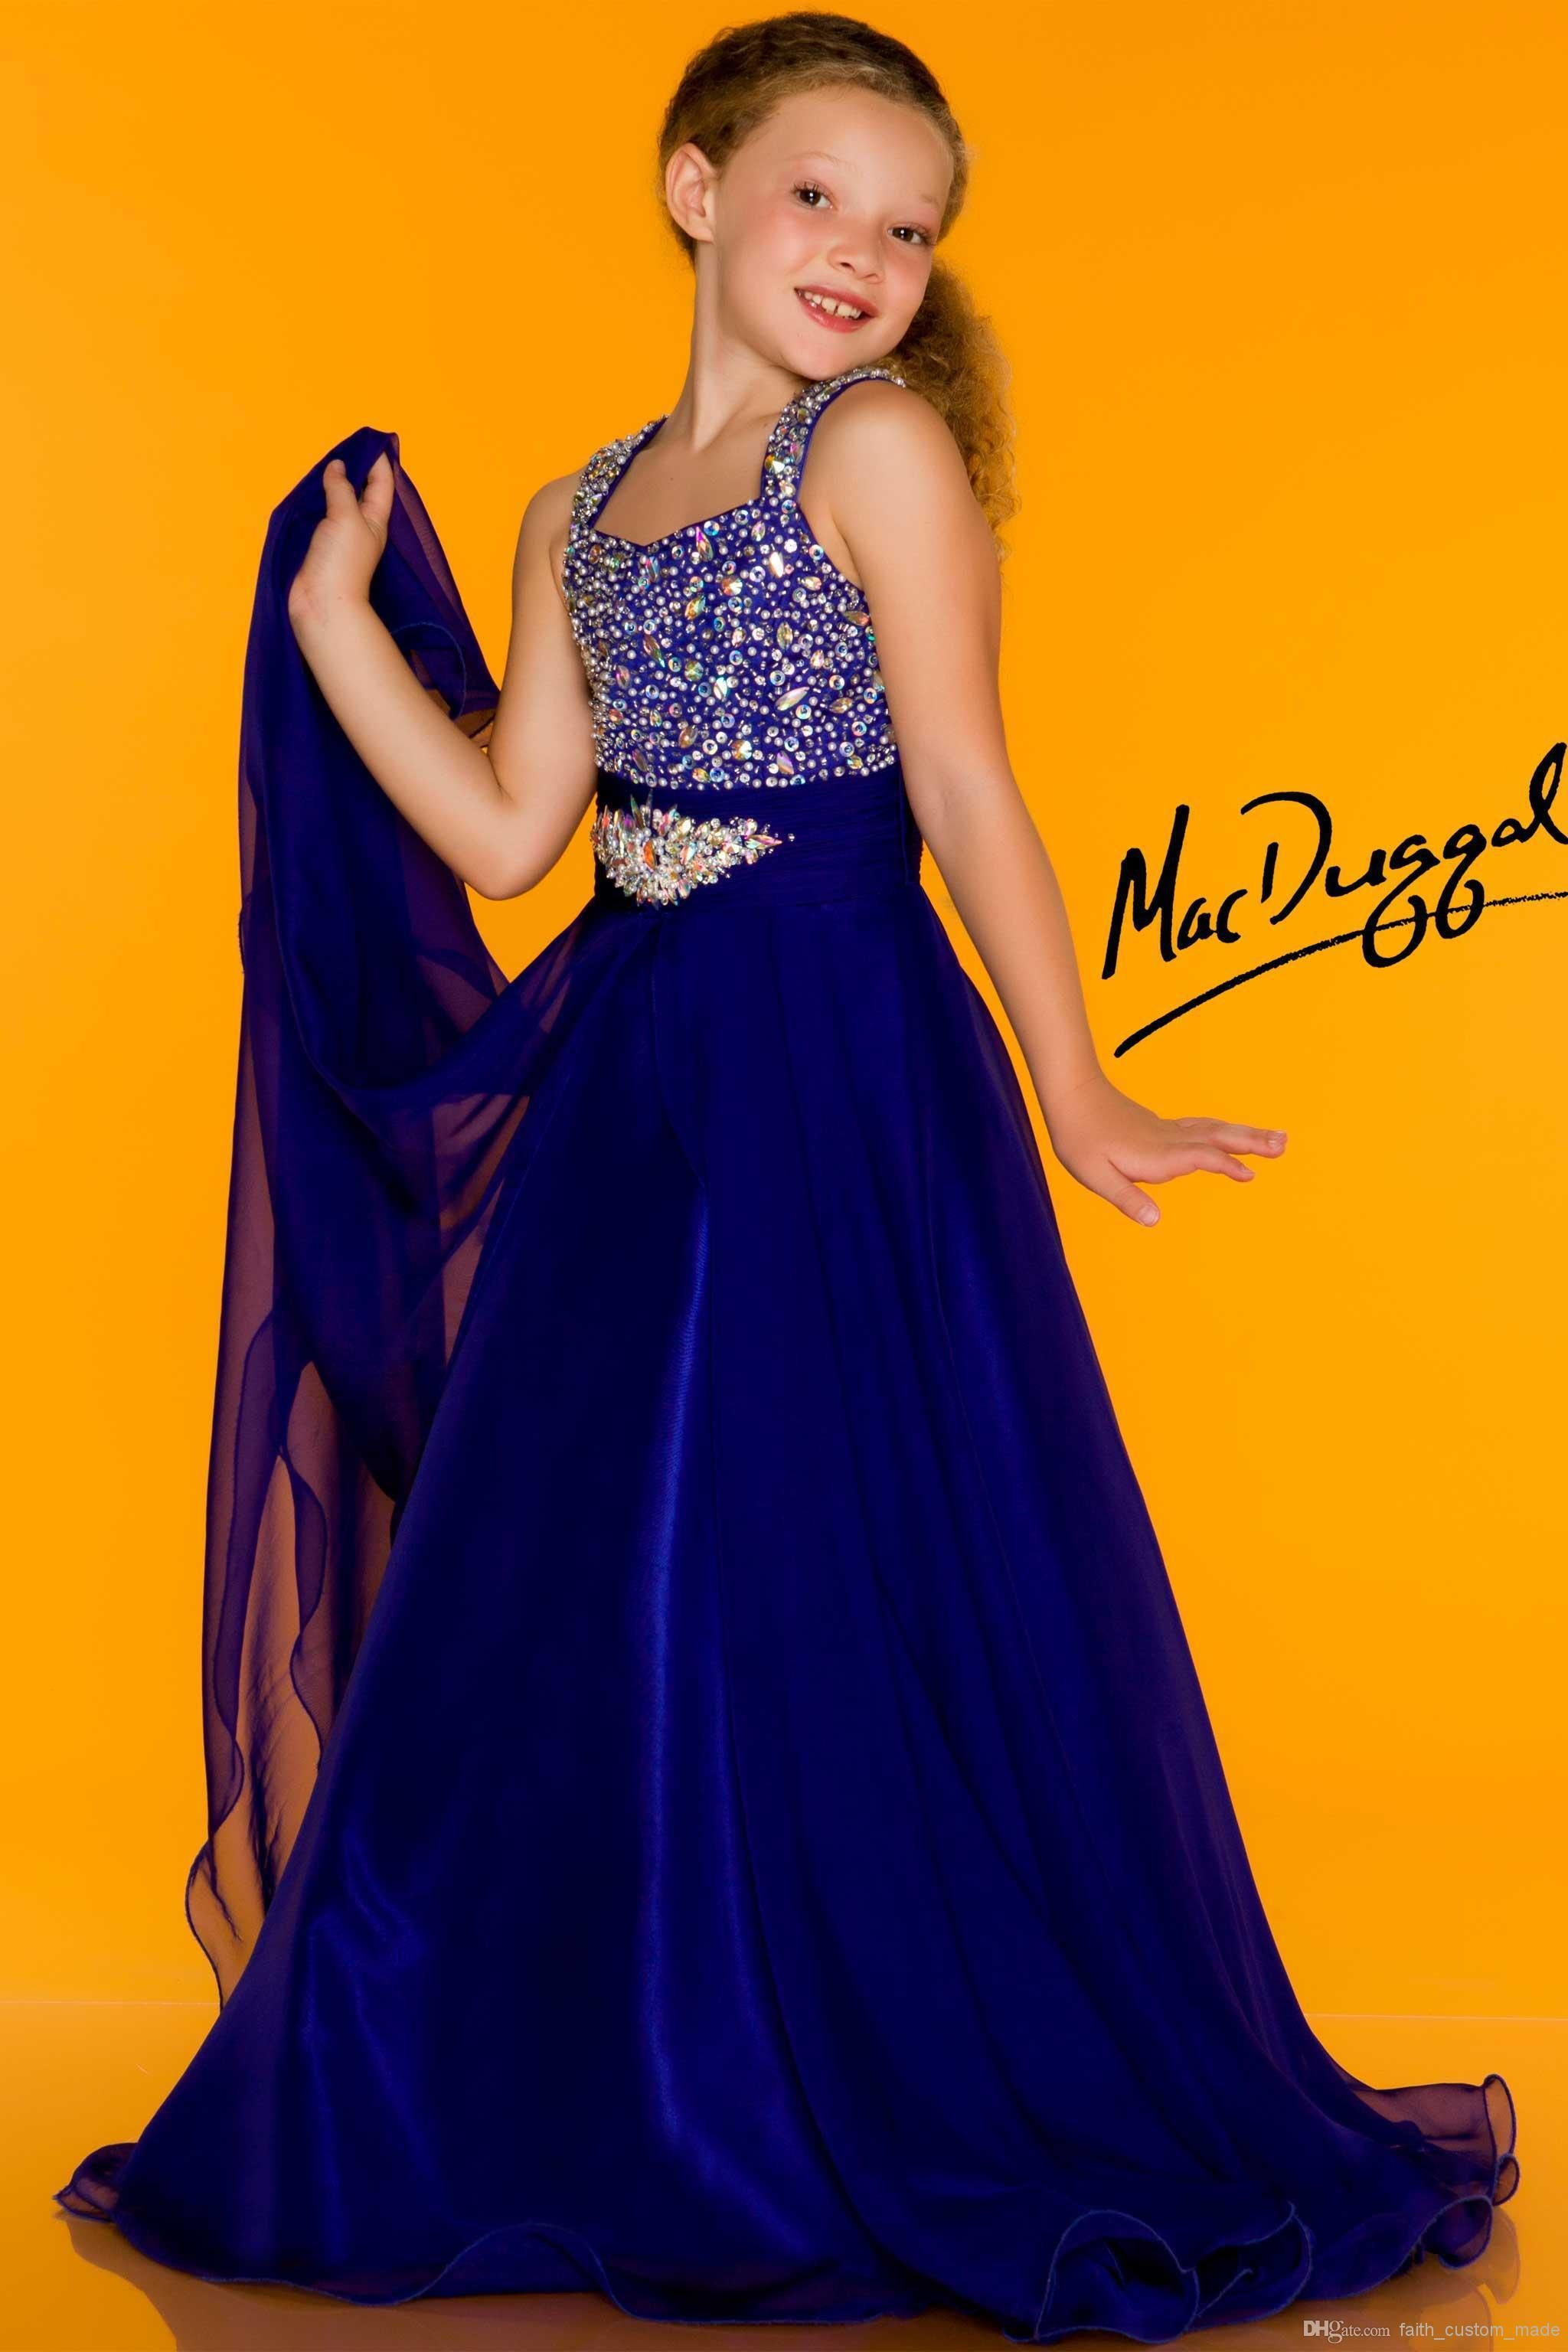 892d088c9 Wholesale Girl s Pageant Dresses - Buy Royal Blue Red Girl s Pageant ...